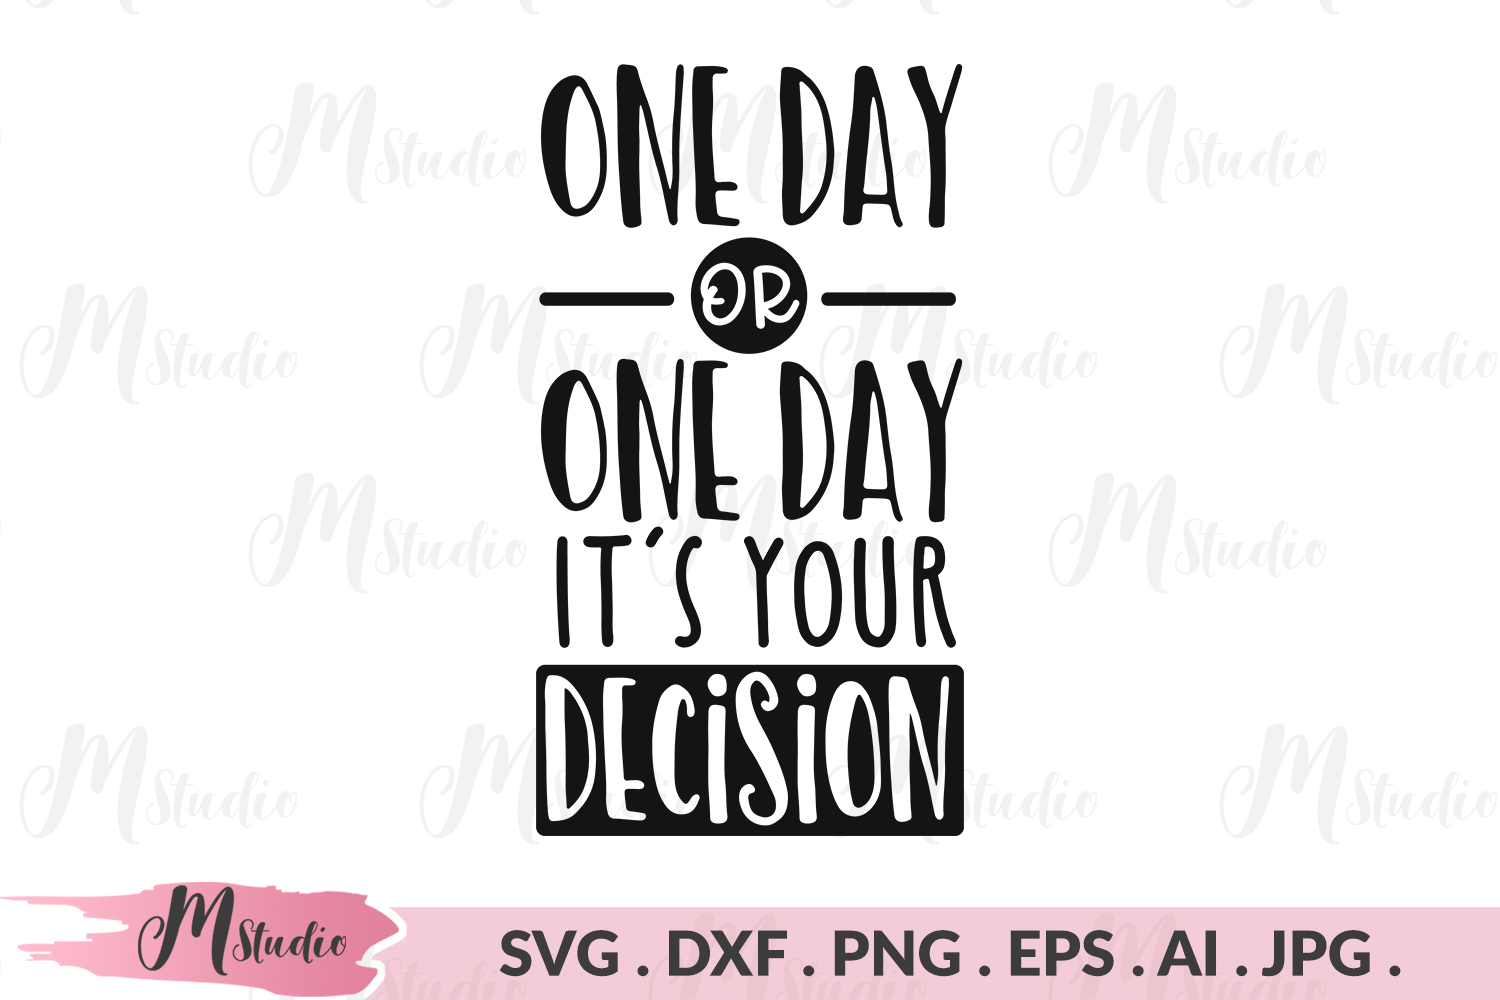 One day or day one it's your decision svg. example image 1